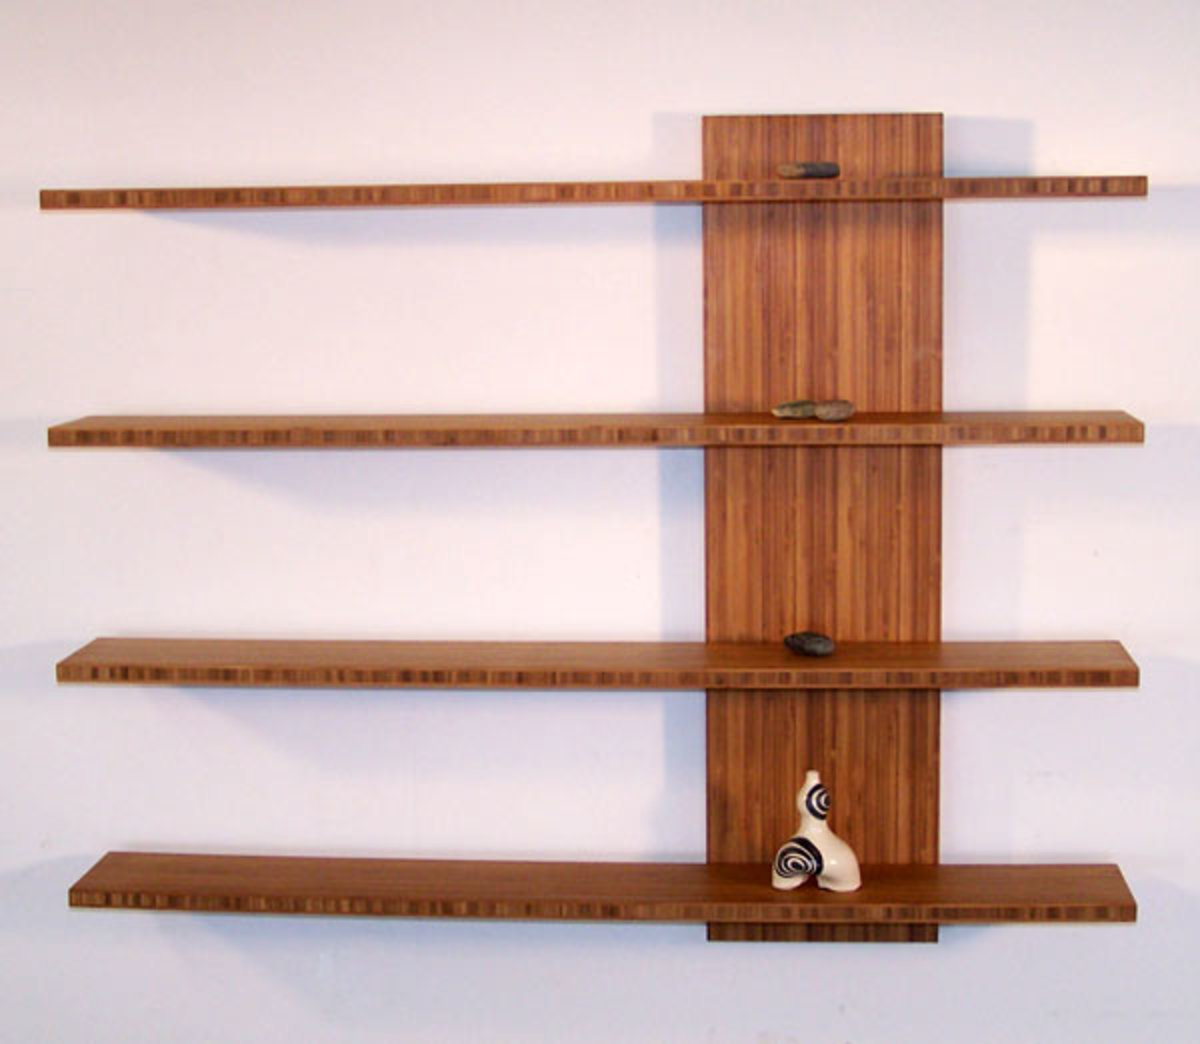 How To Build Homemade Wooden Floating Shelves